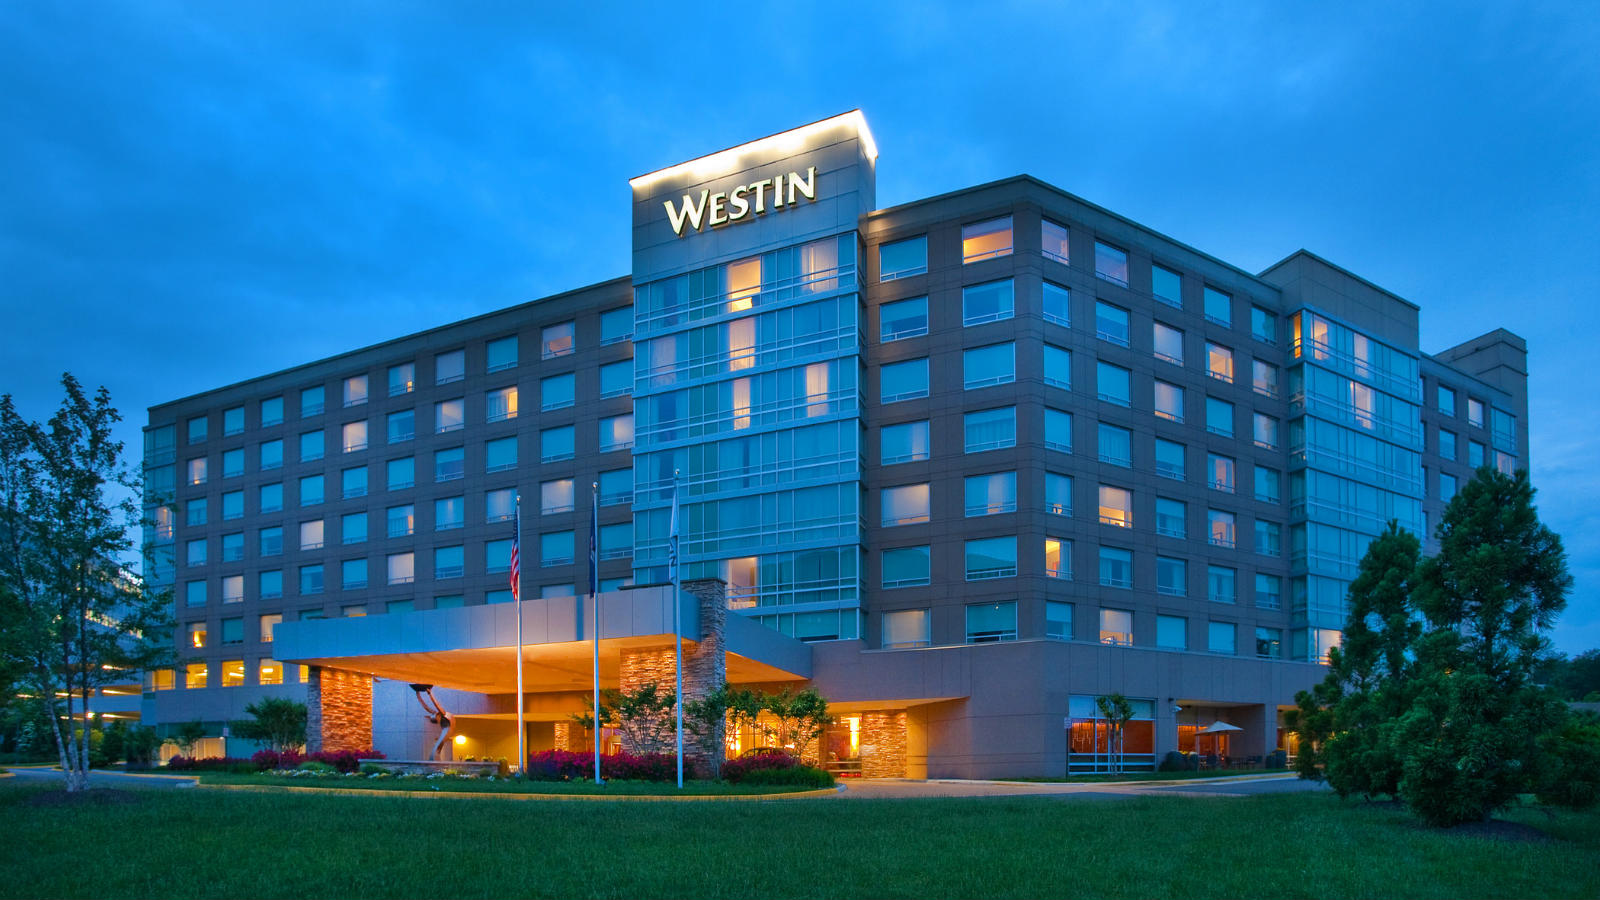 The Westin Washington Dulles Airport Exterior